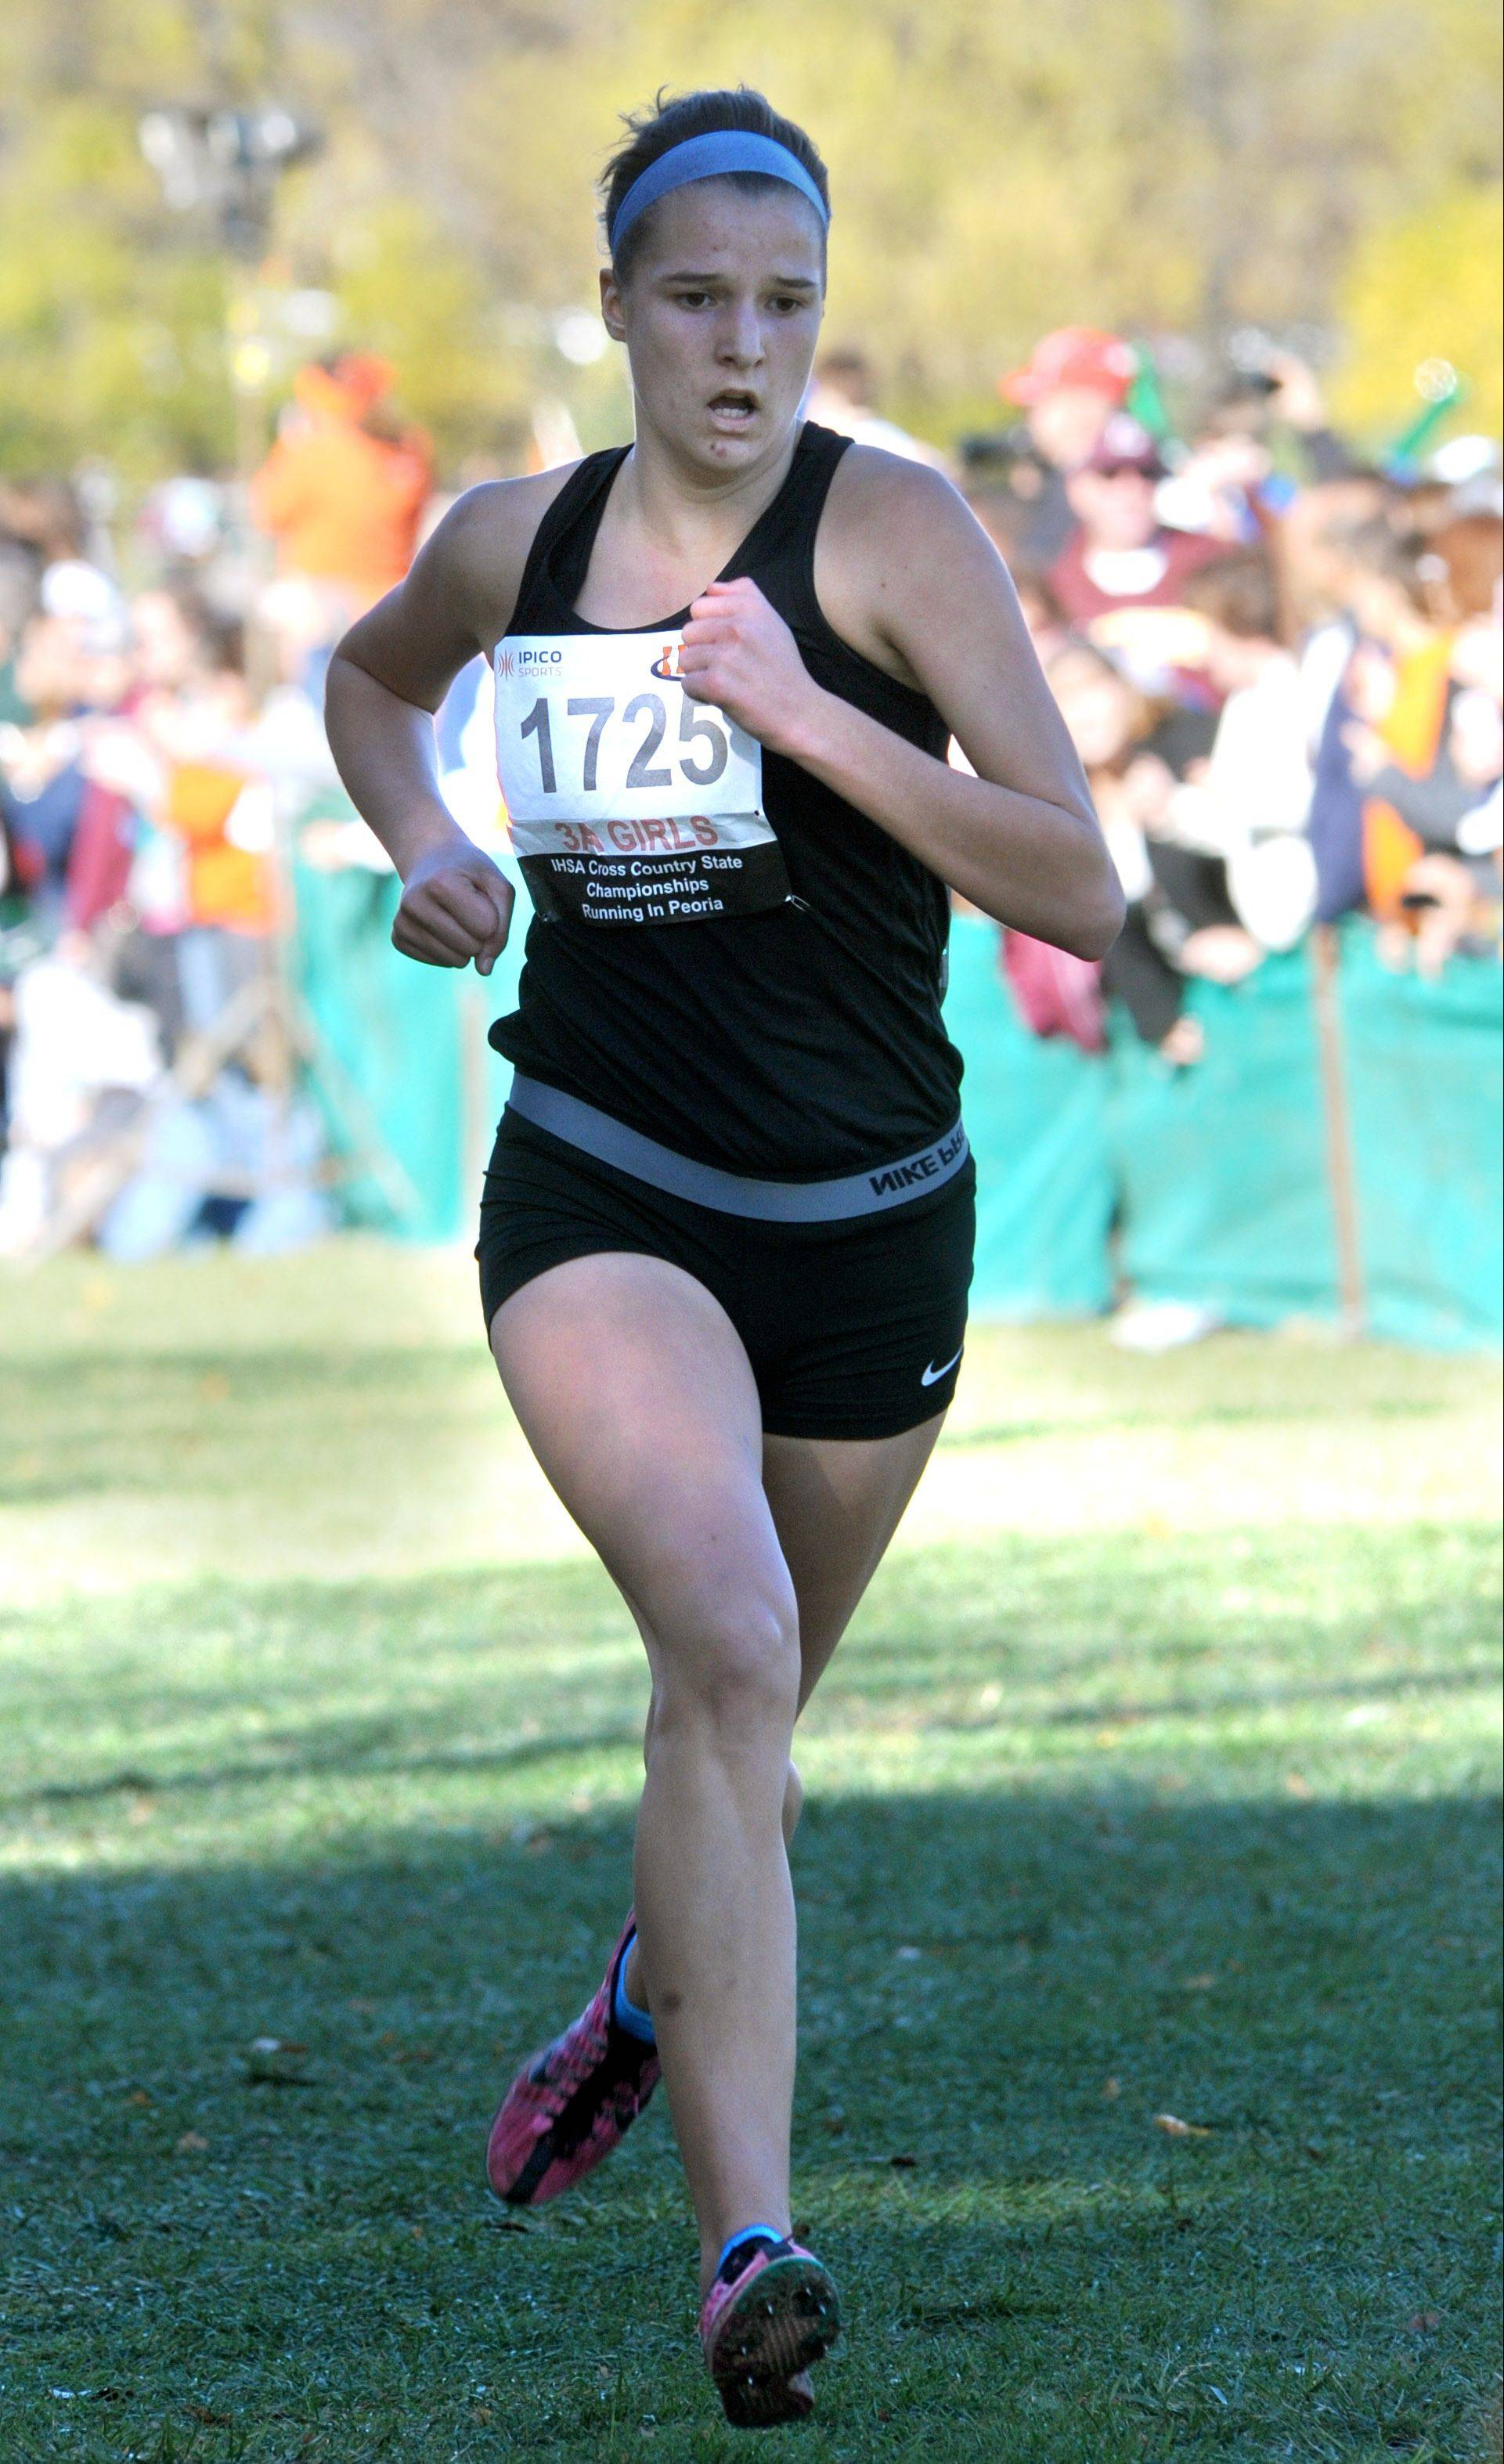 St. Charles North's Ashley England finished 11th place in the Class 3A cross country state finals at Detweiller Park in Peoria on Saturday.